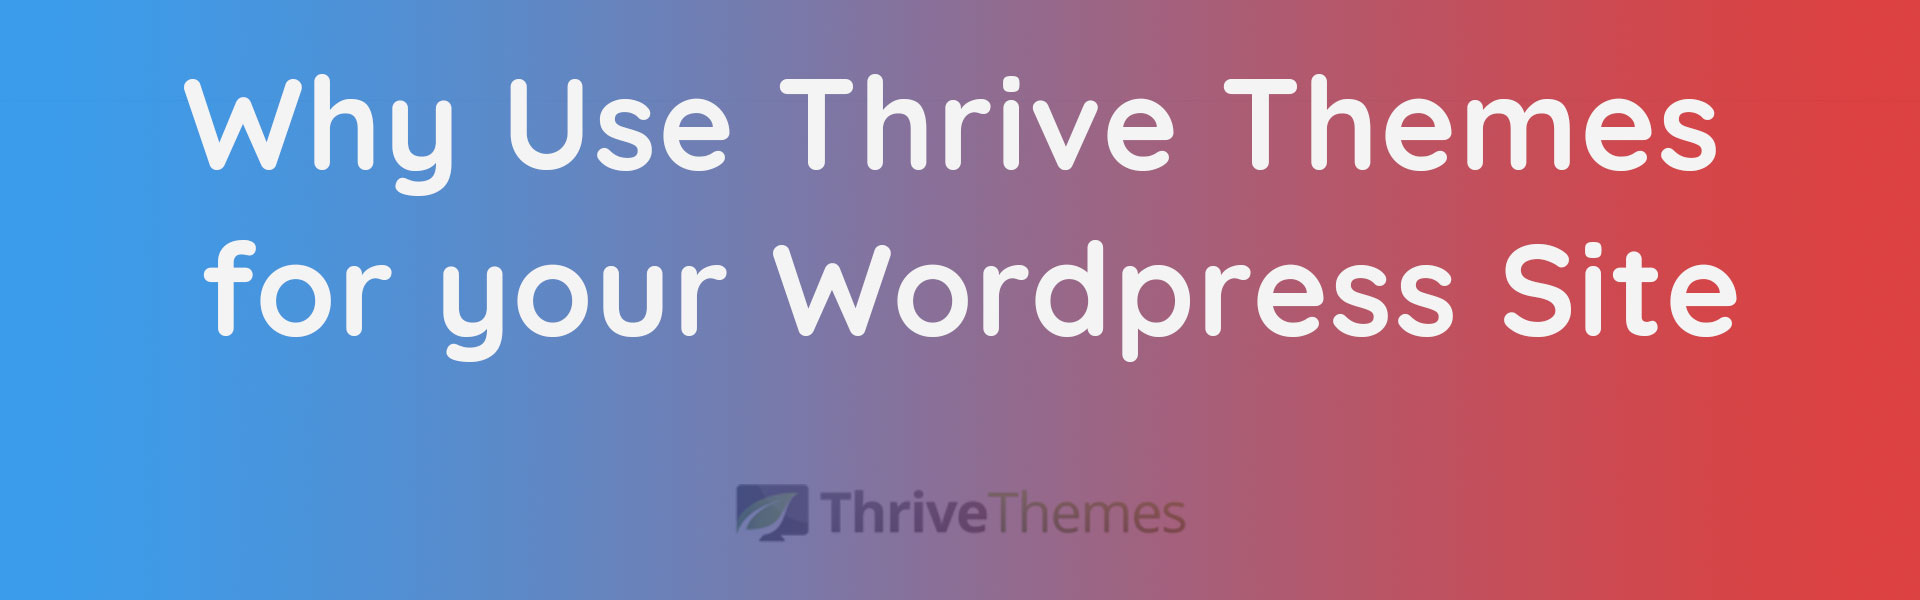 Thrive Themes  WordPress Themes Warranty Info